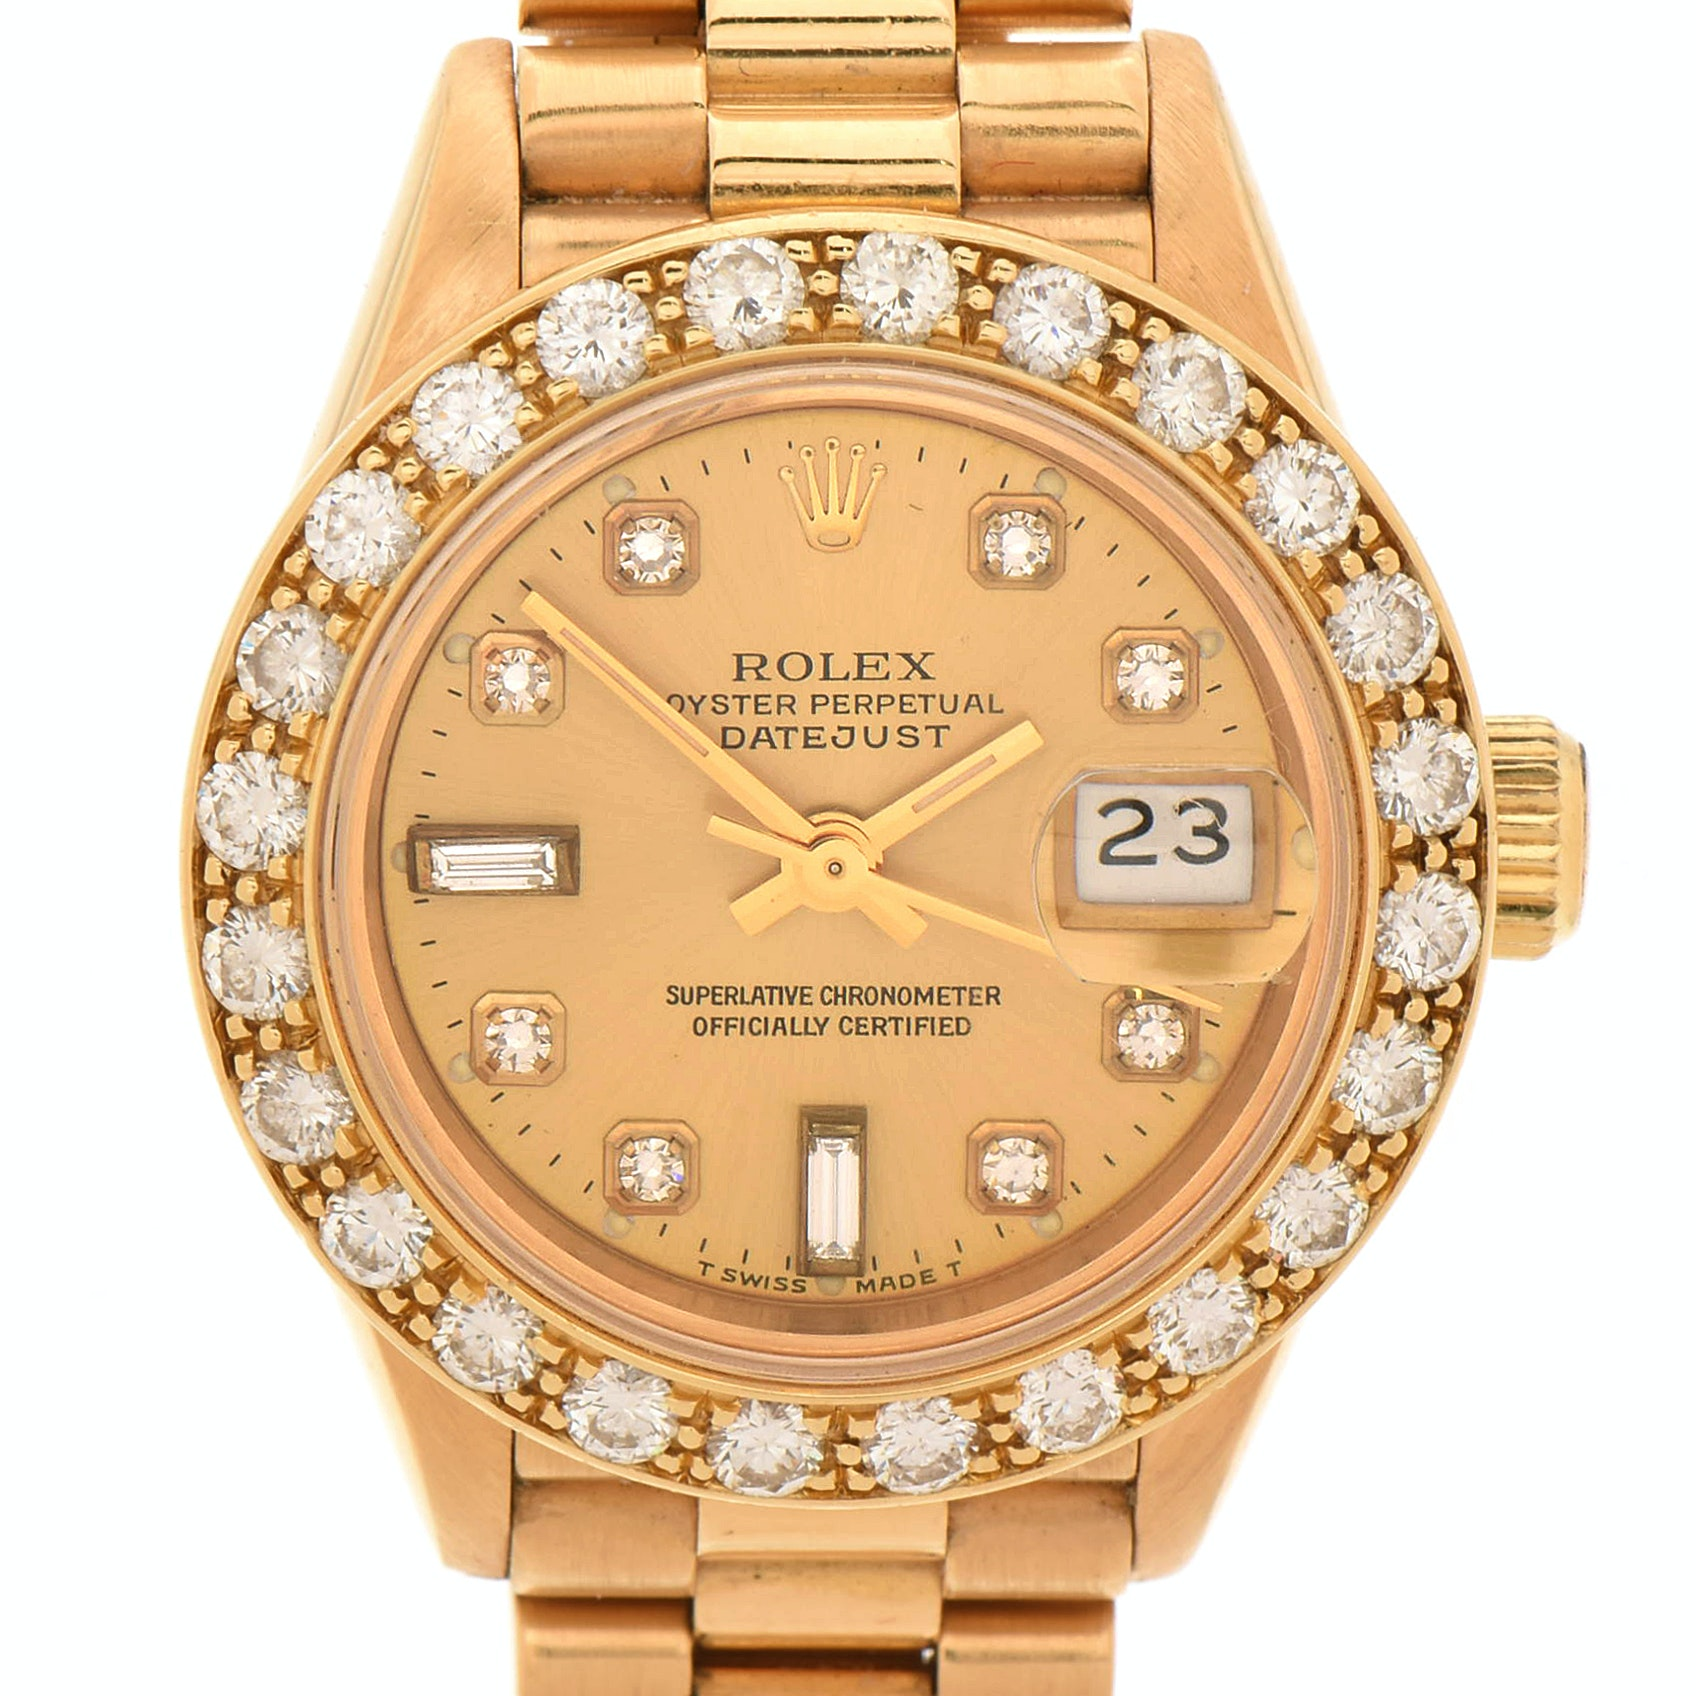 Rolex Datejust Presidential 18K Yellow Gold Diamond Wristwatch, 1989